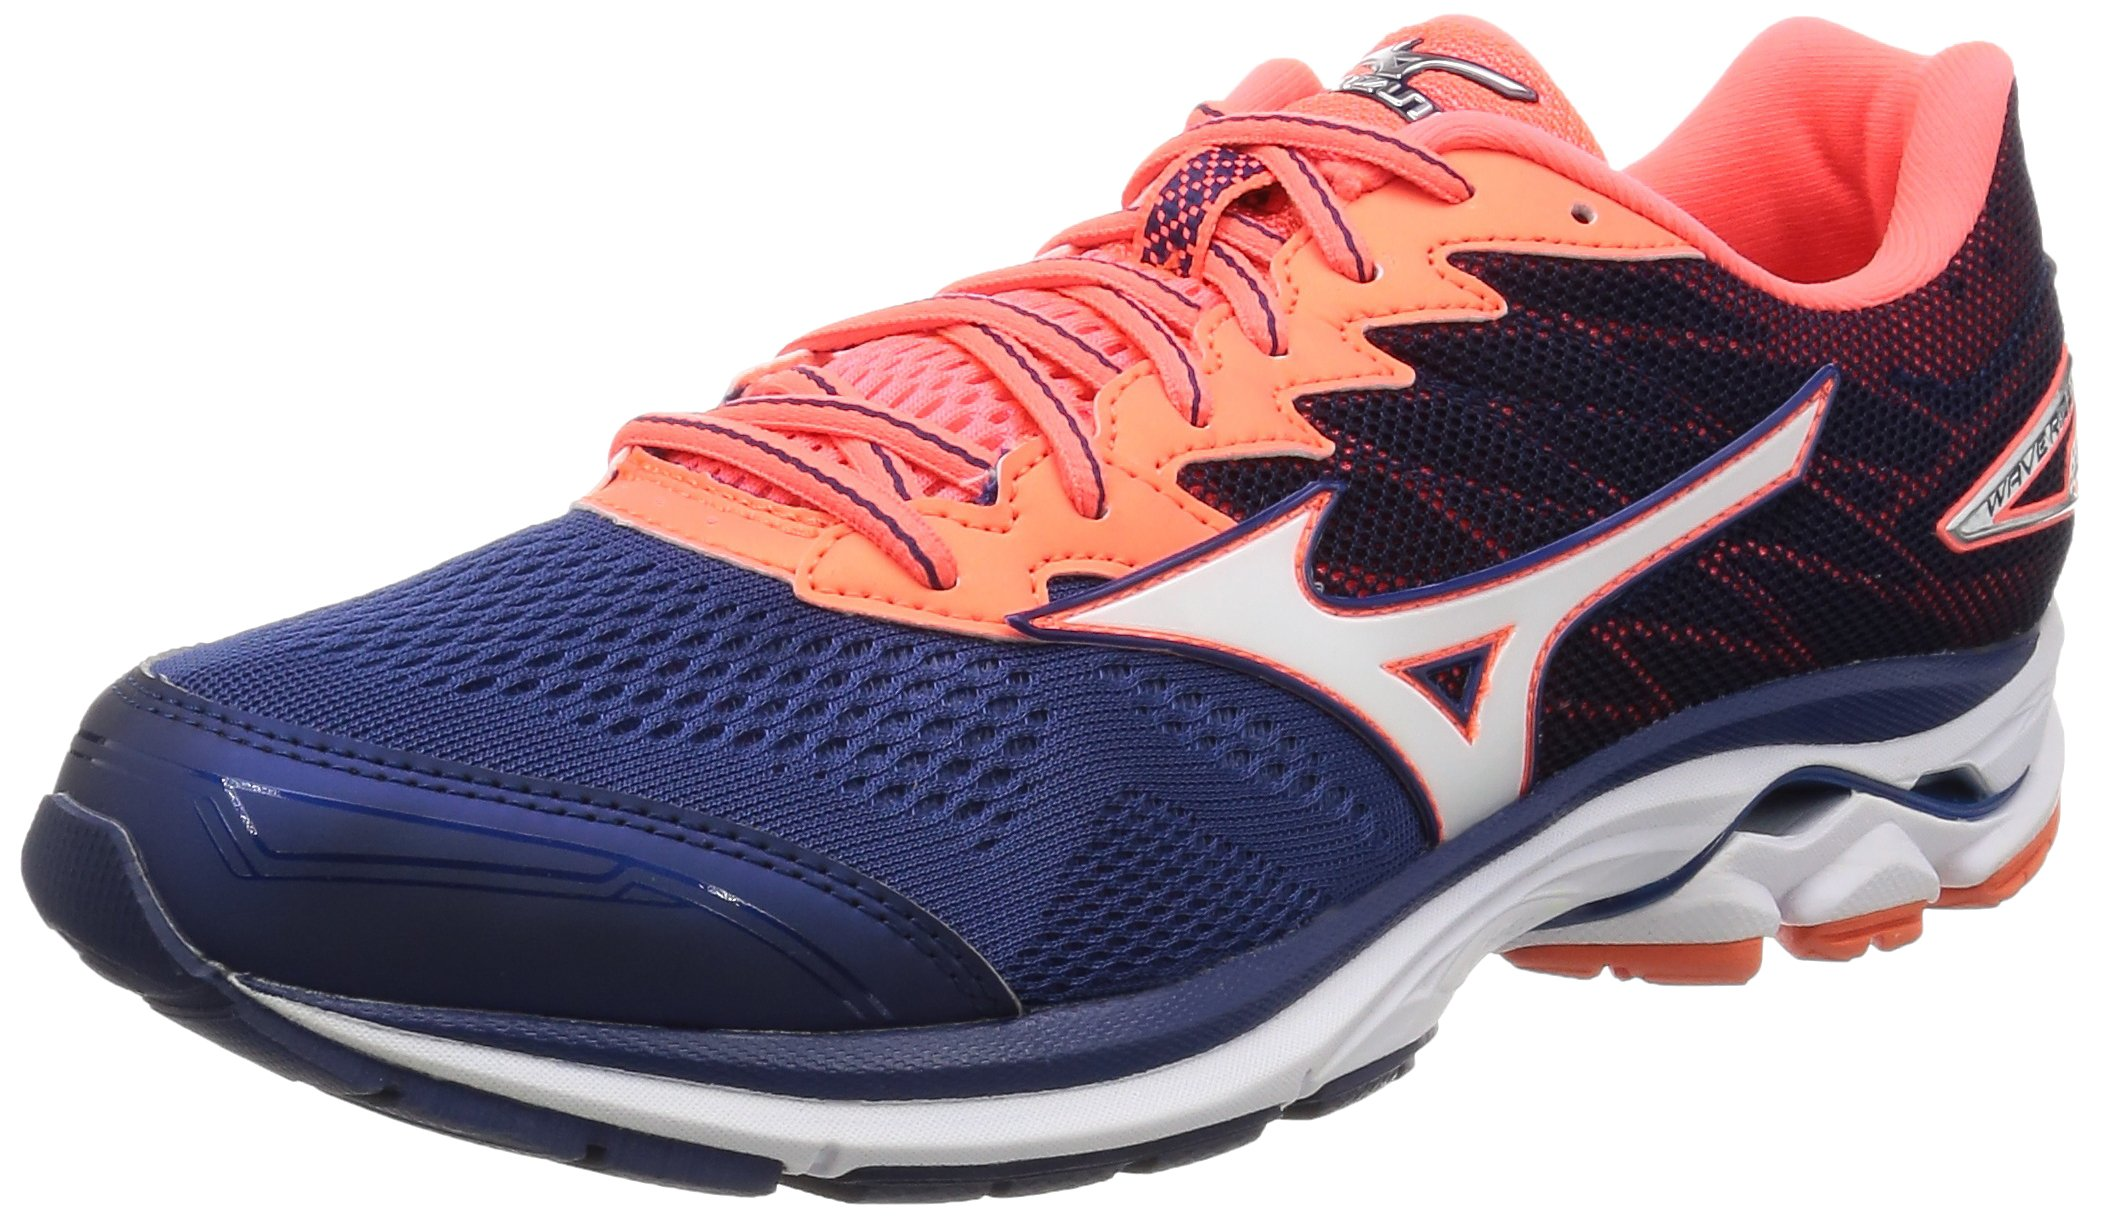 01 Mizuno Wave Rider 20 Mens Running Runner Shoe D